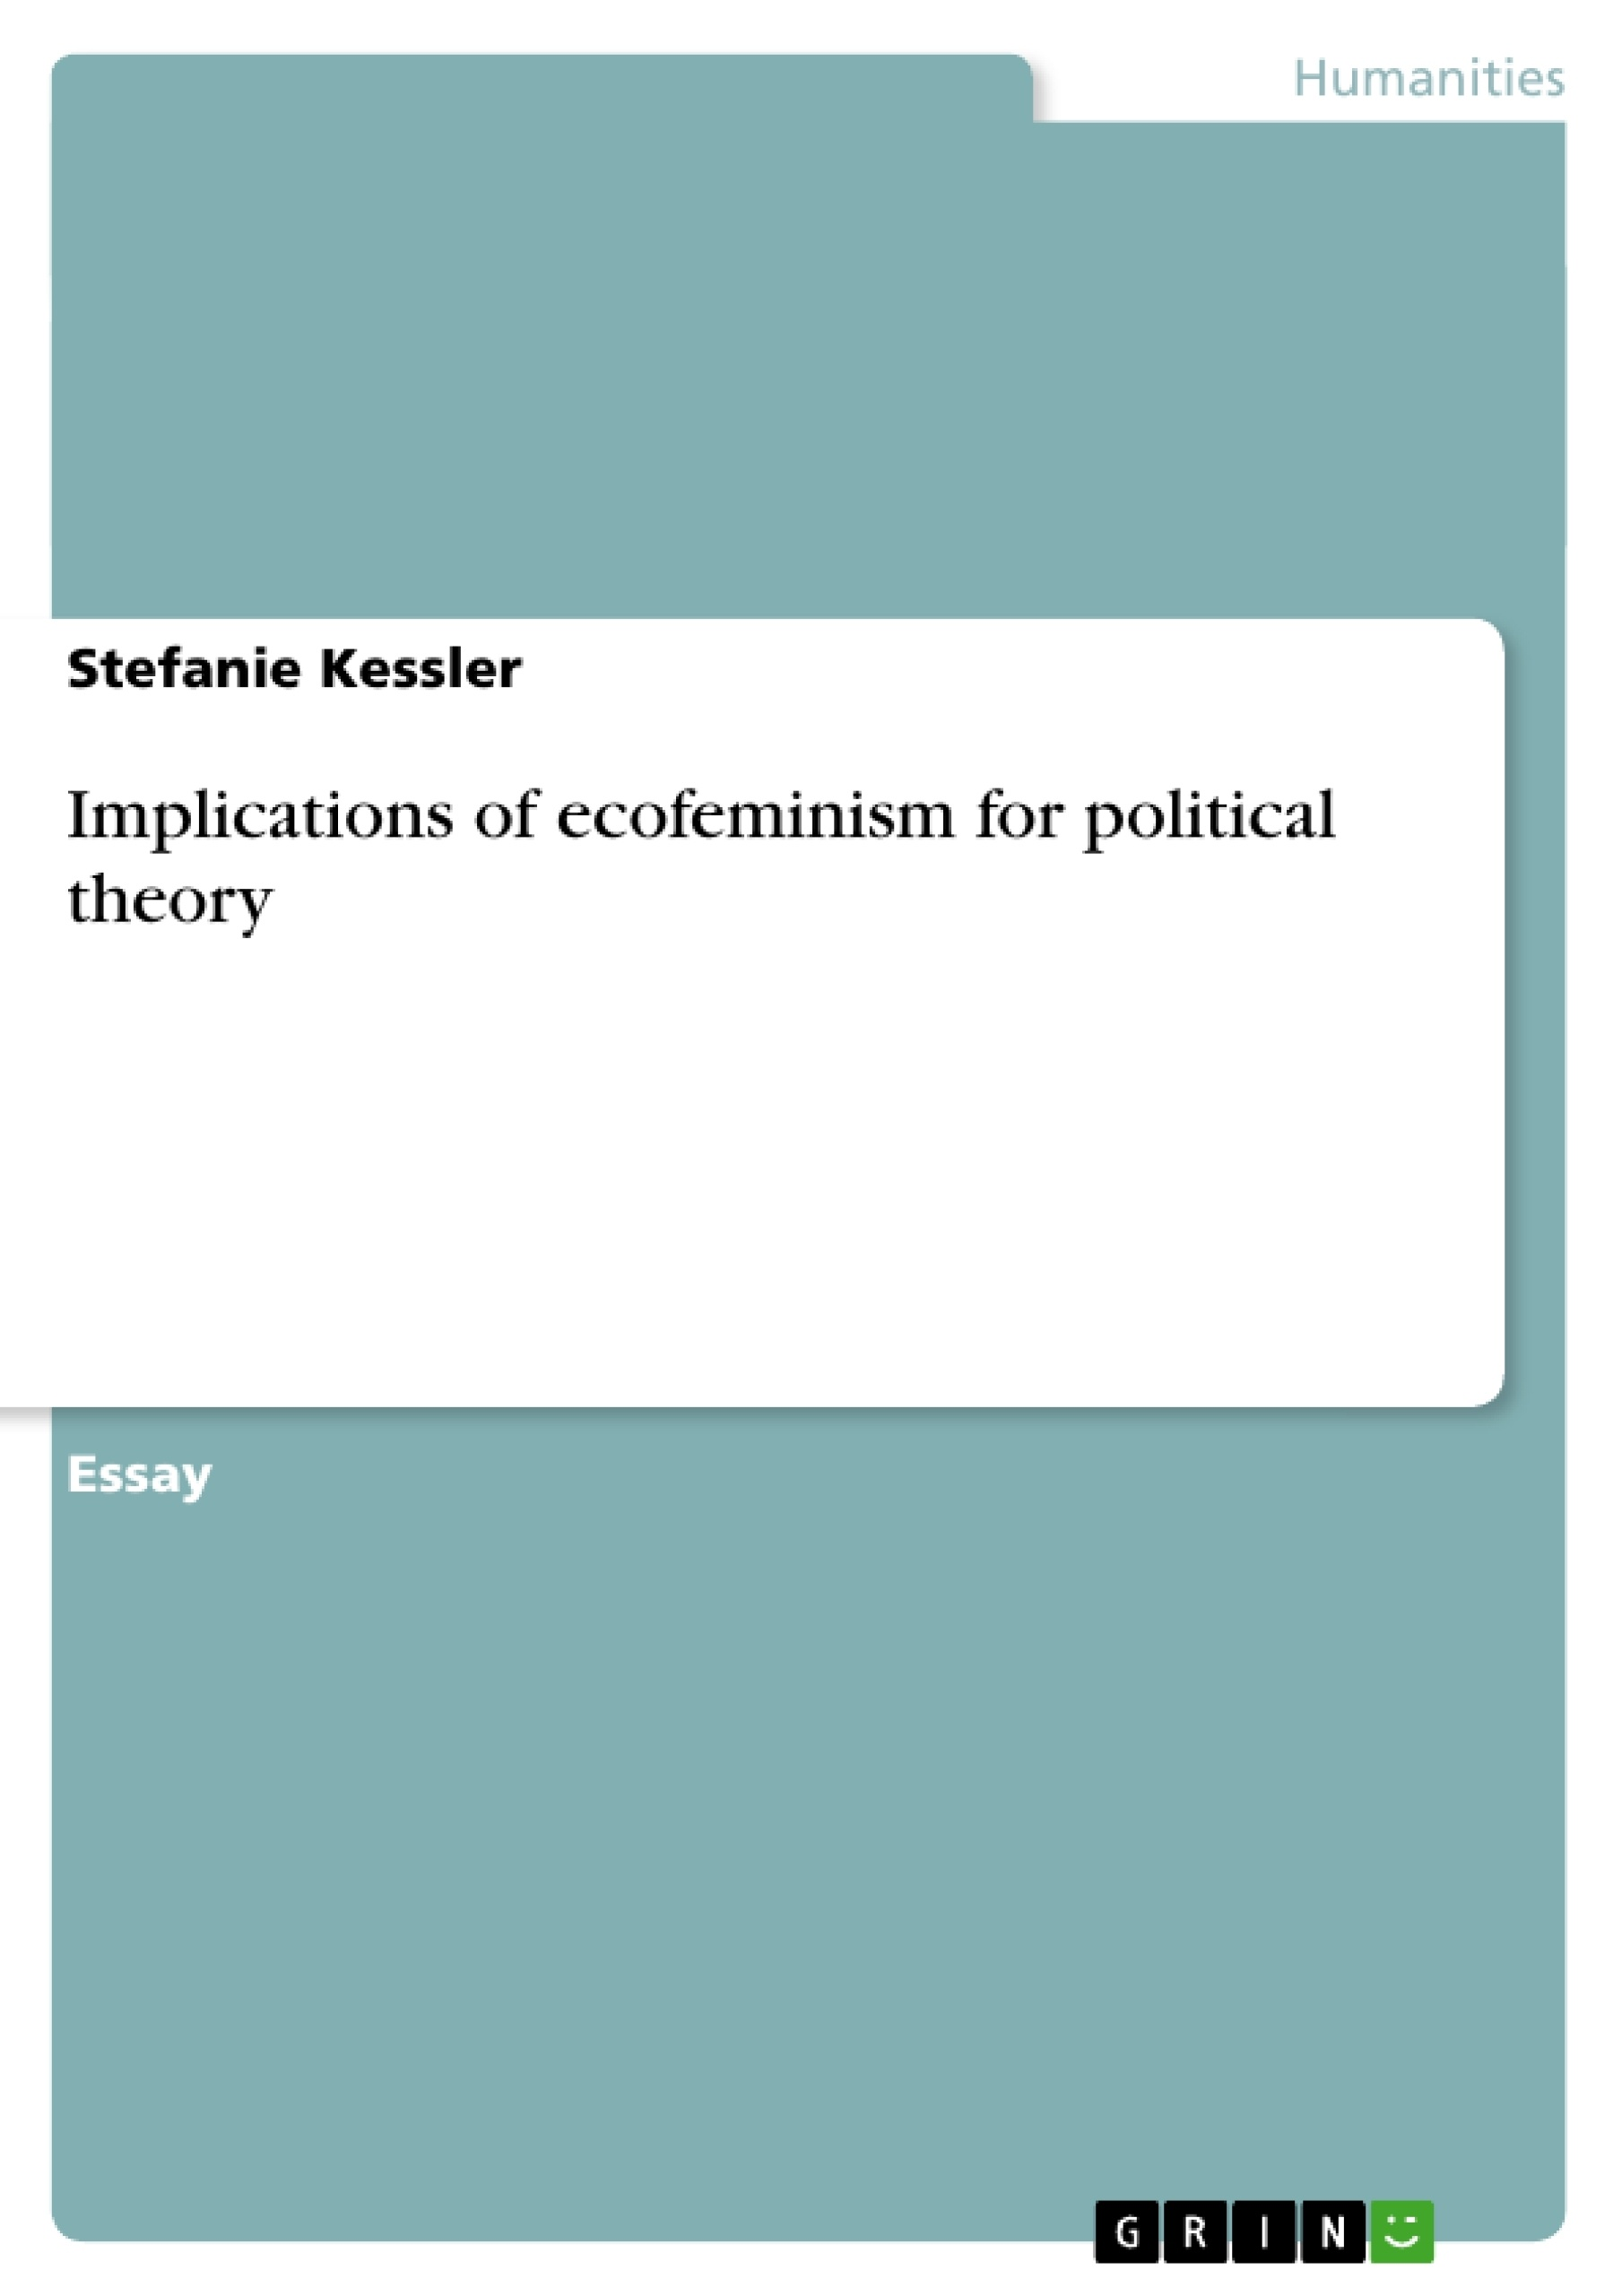 Title: Implications of ecofeminism for political theory